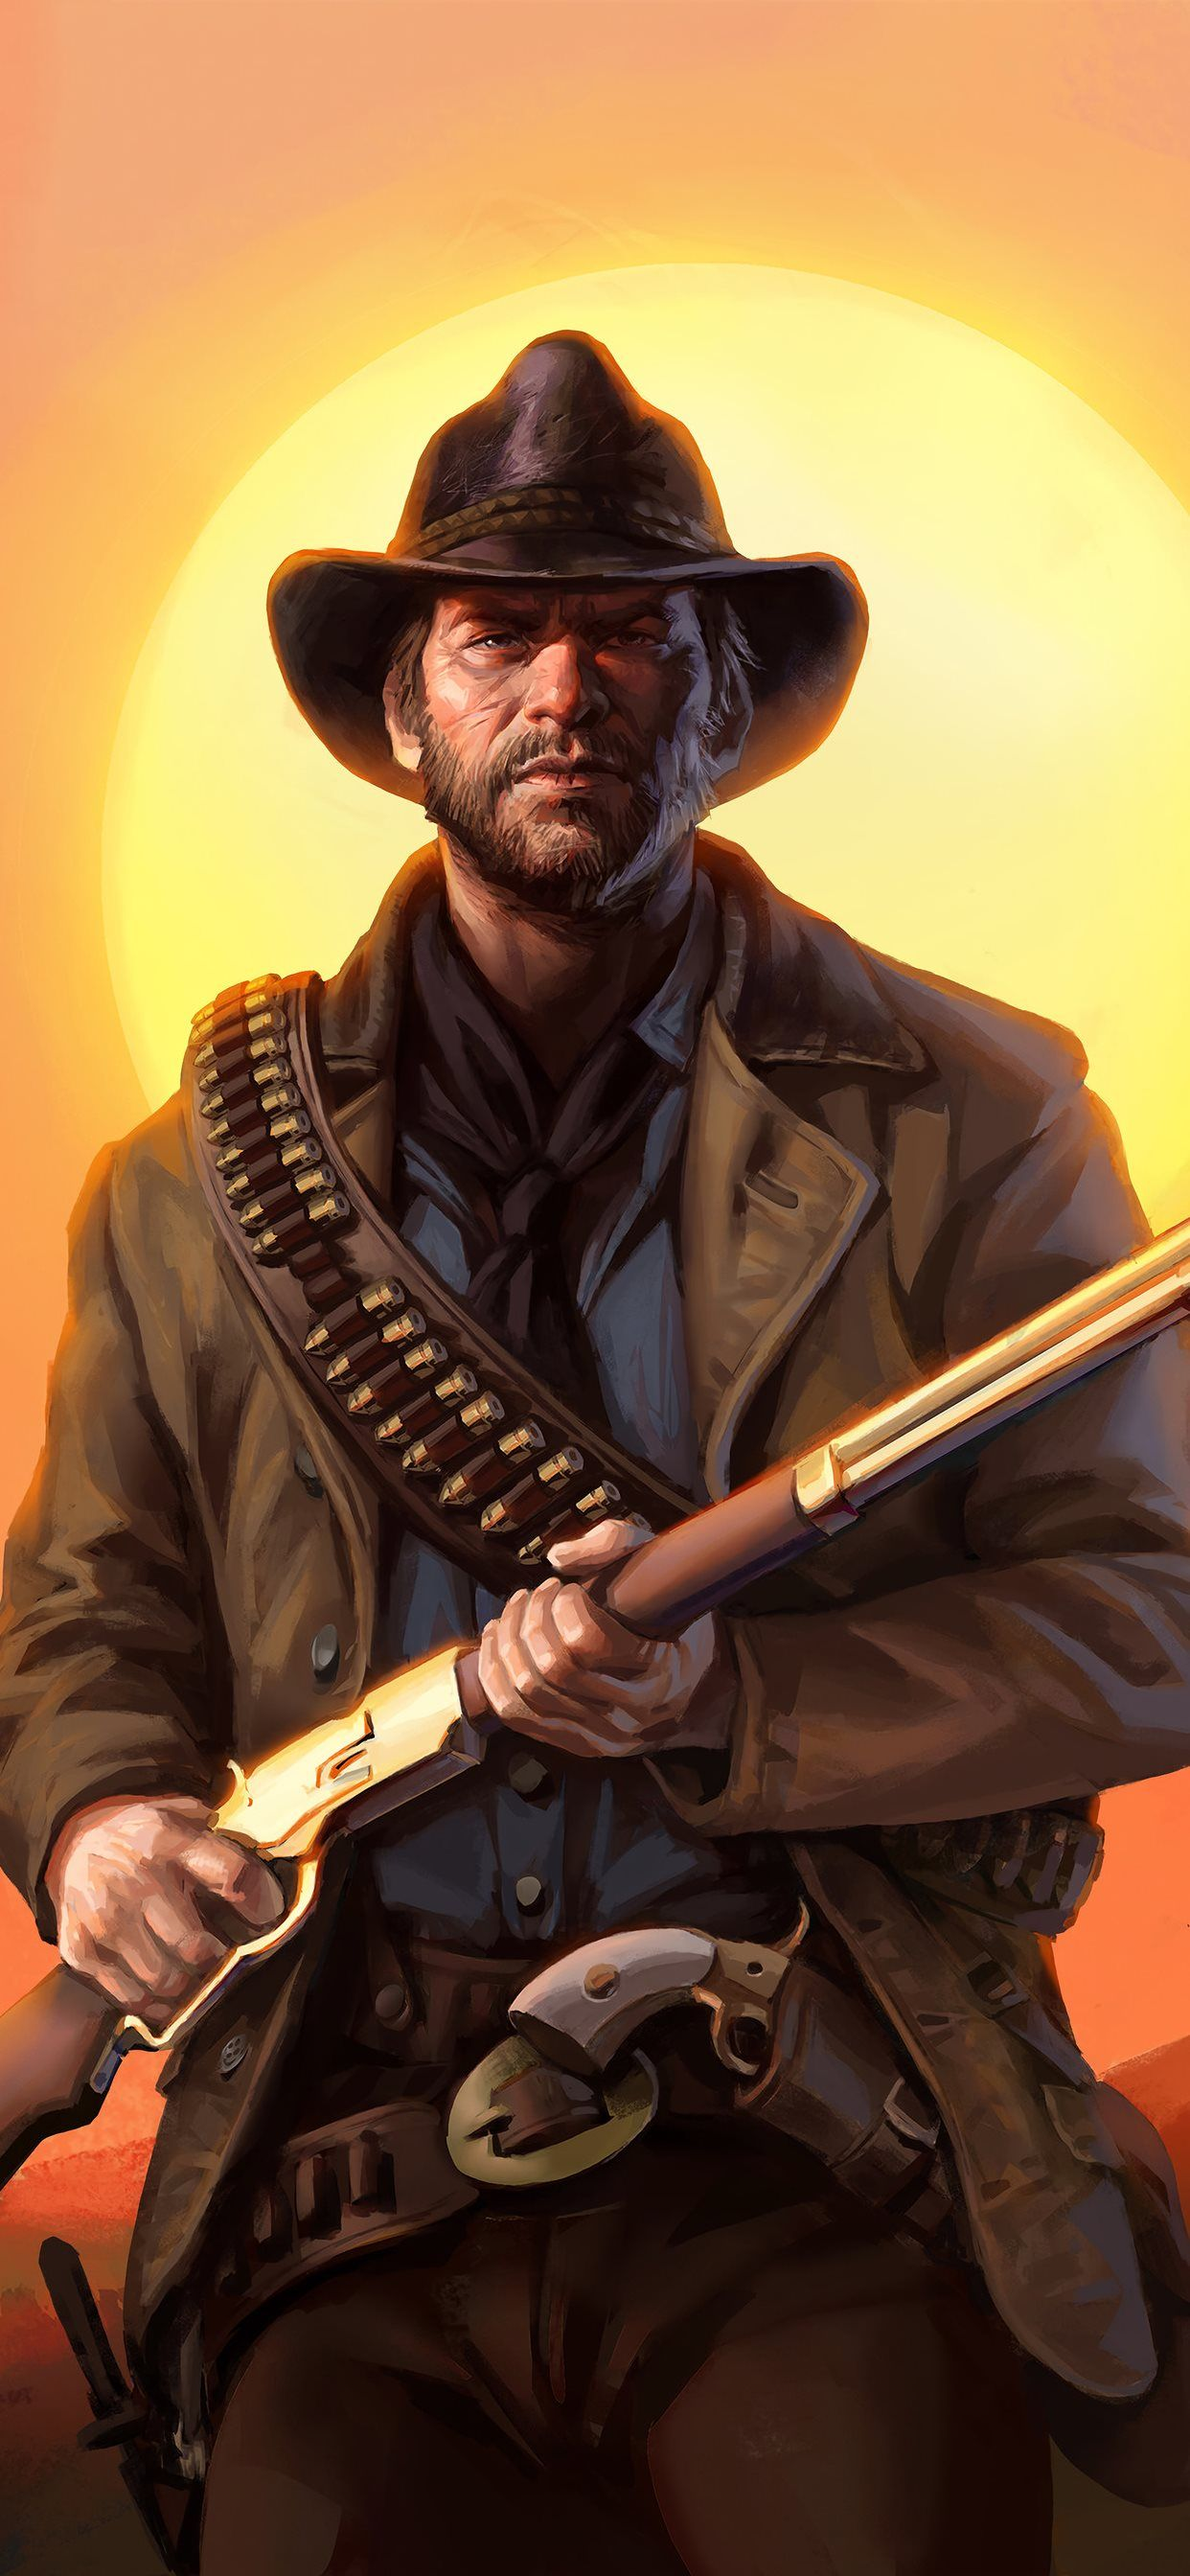 Red Dead Redemption 2 iPhone Wallpapers - Wallpaper Cave